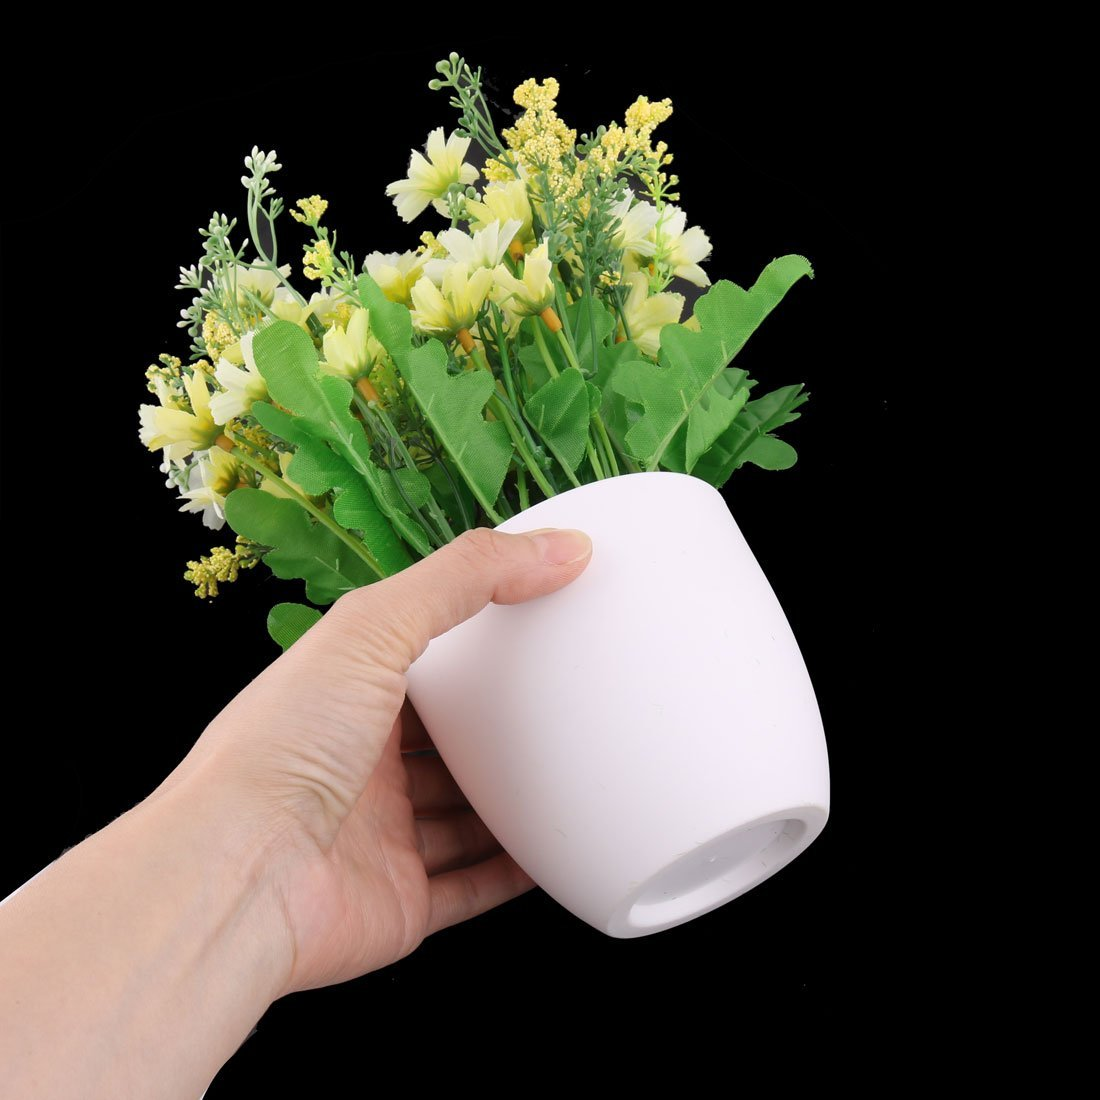 Amazon.com: eDealMax plástico del Ministerio del Interior Daisy maceta Artificial artesanía Flor de escritorio de la decoración de la Tabla: Home & Kitchen